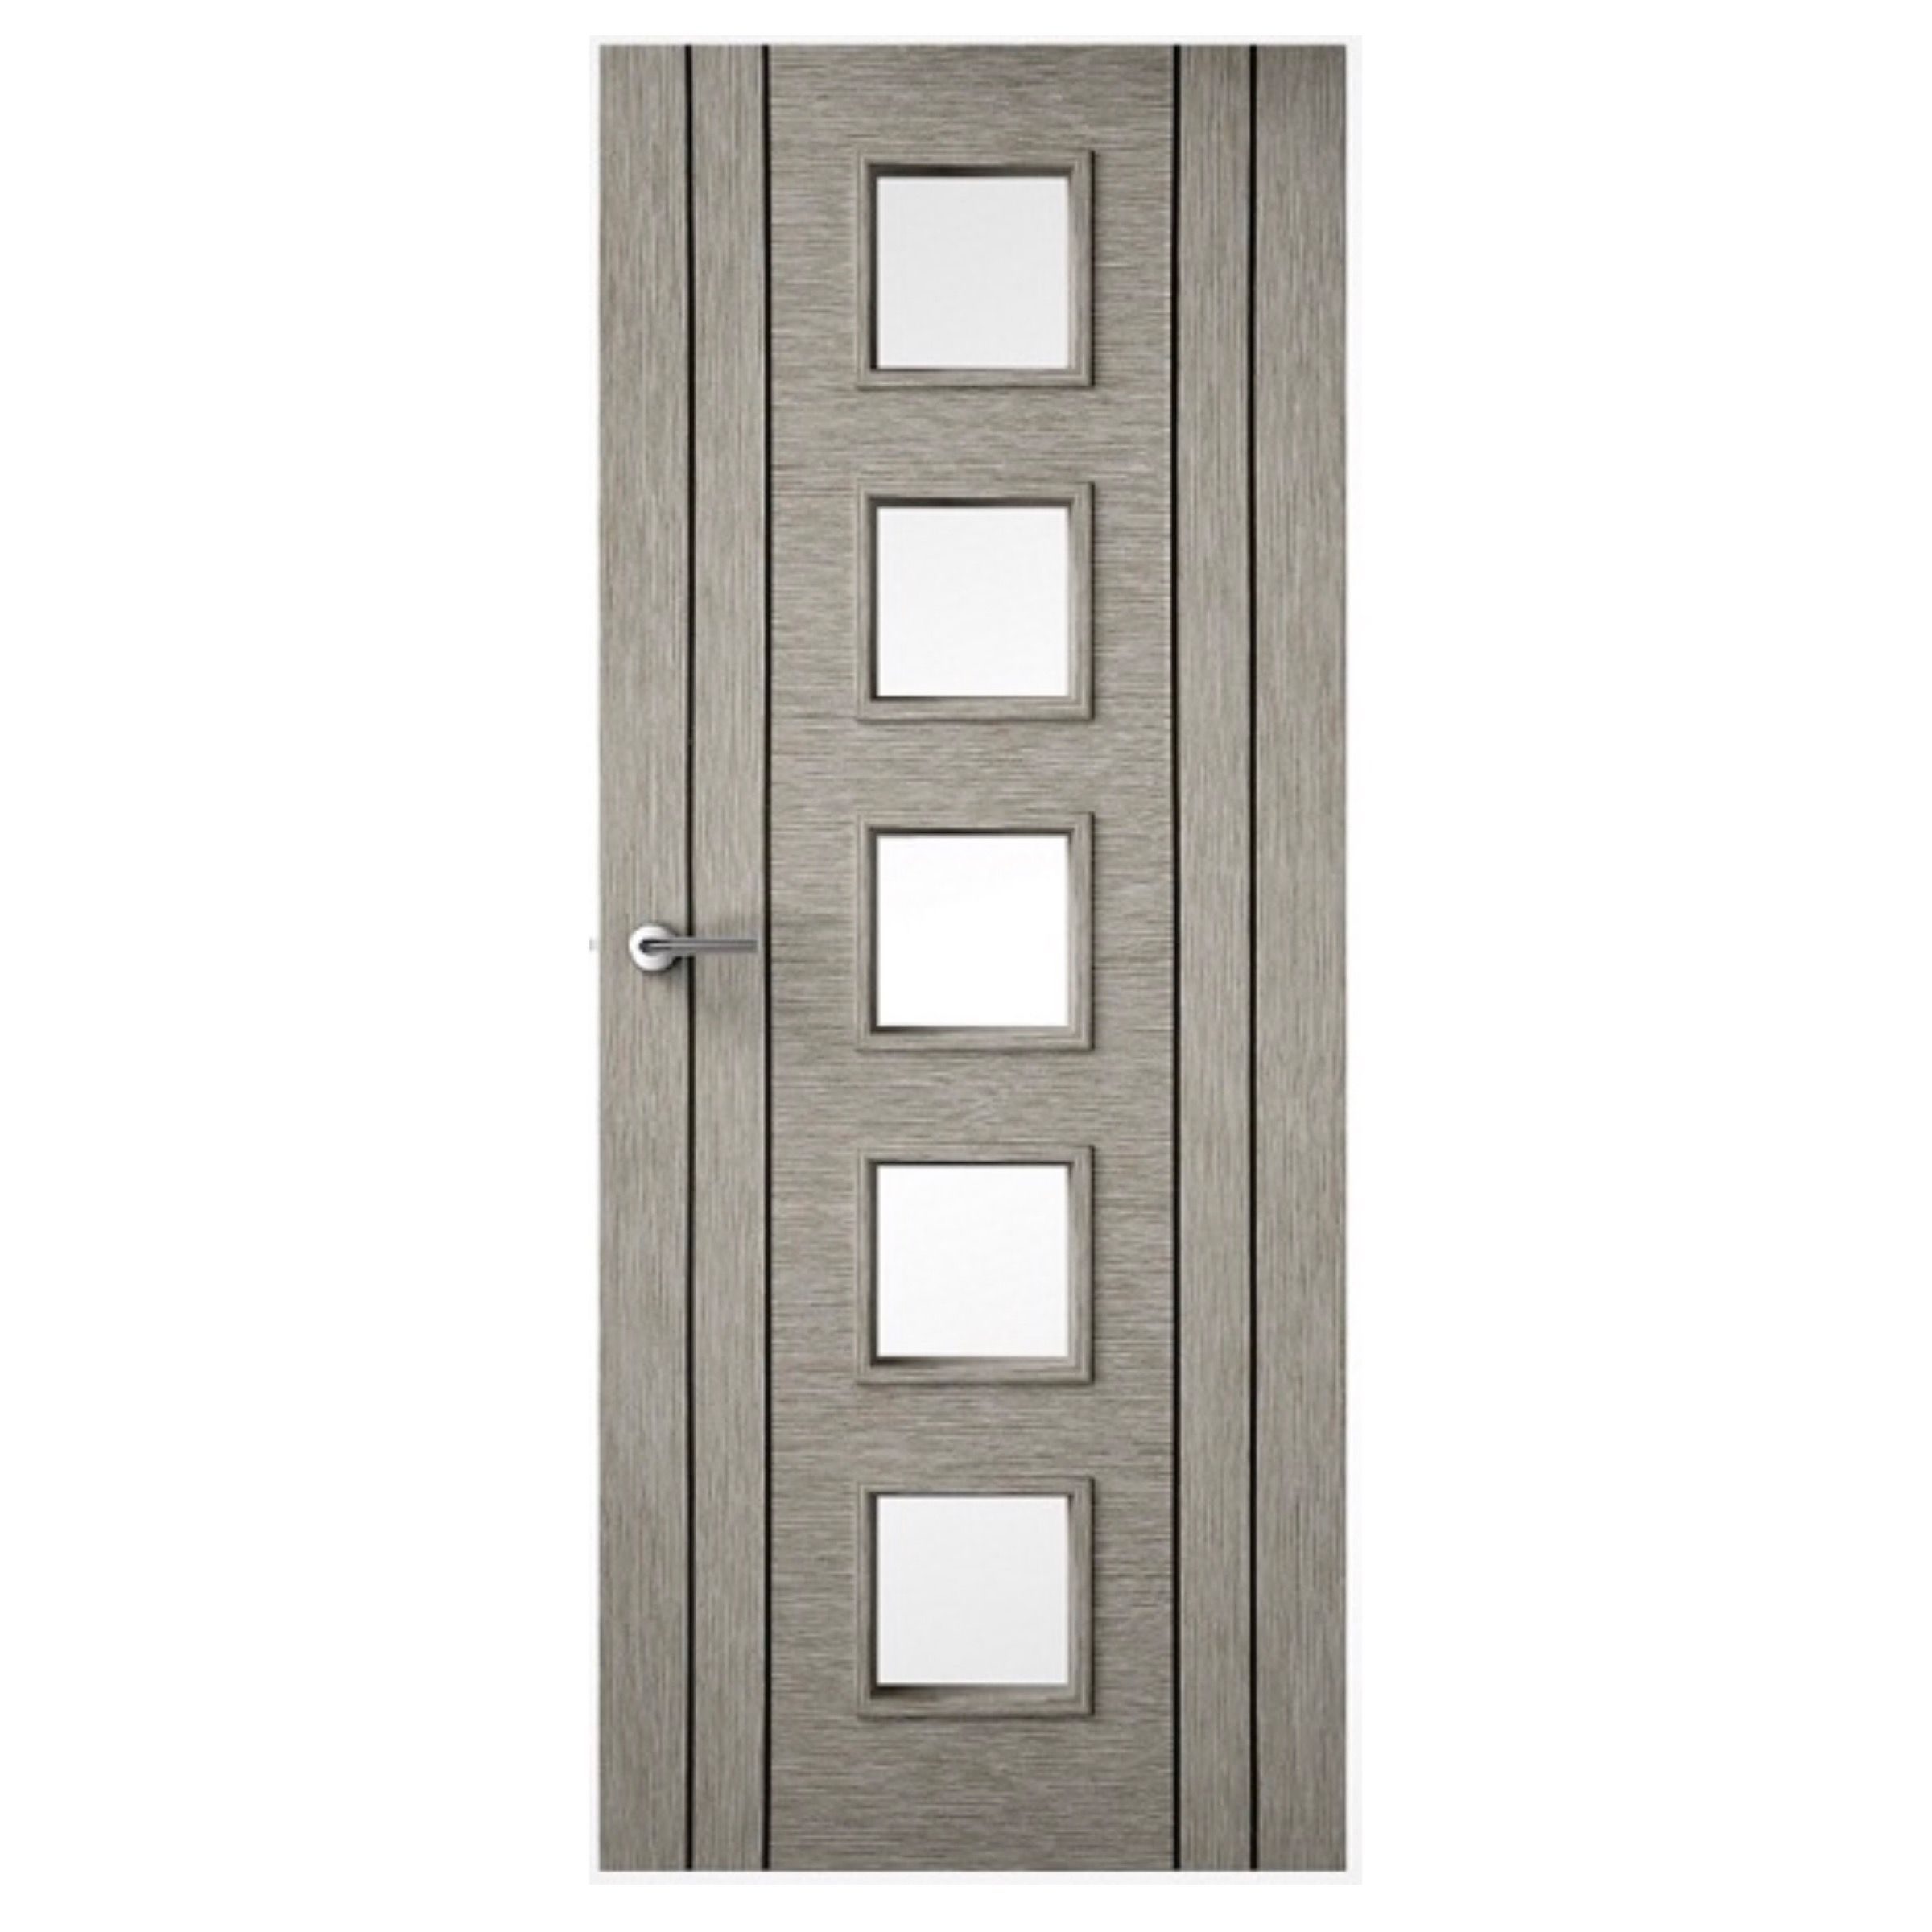 Light Grey Door - 4 LIne Vertical - 10G Clear Glass door - The ...